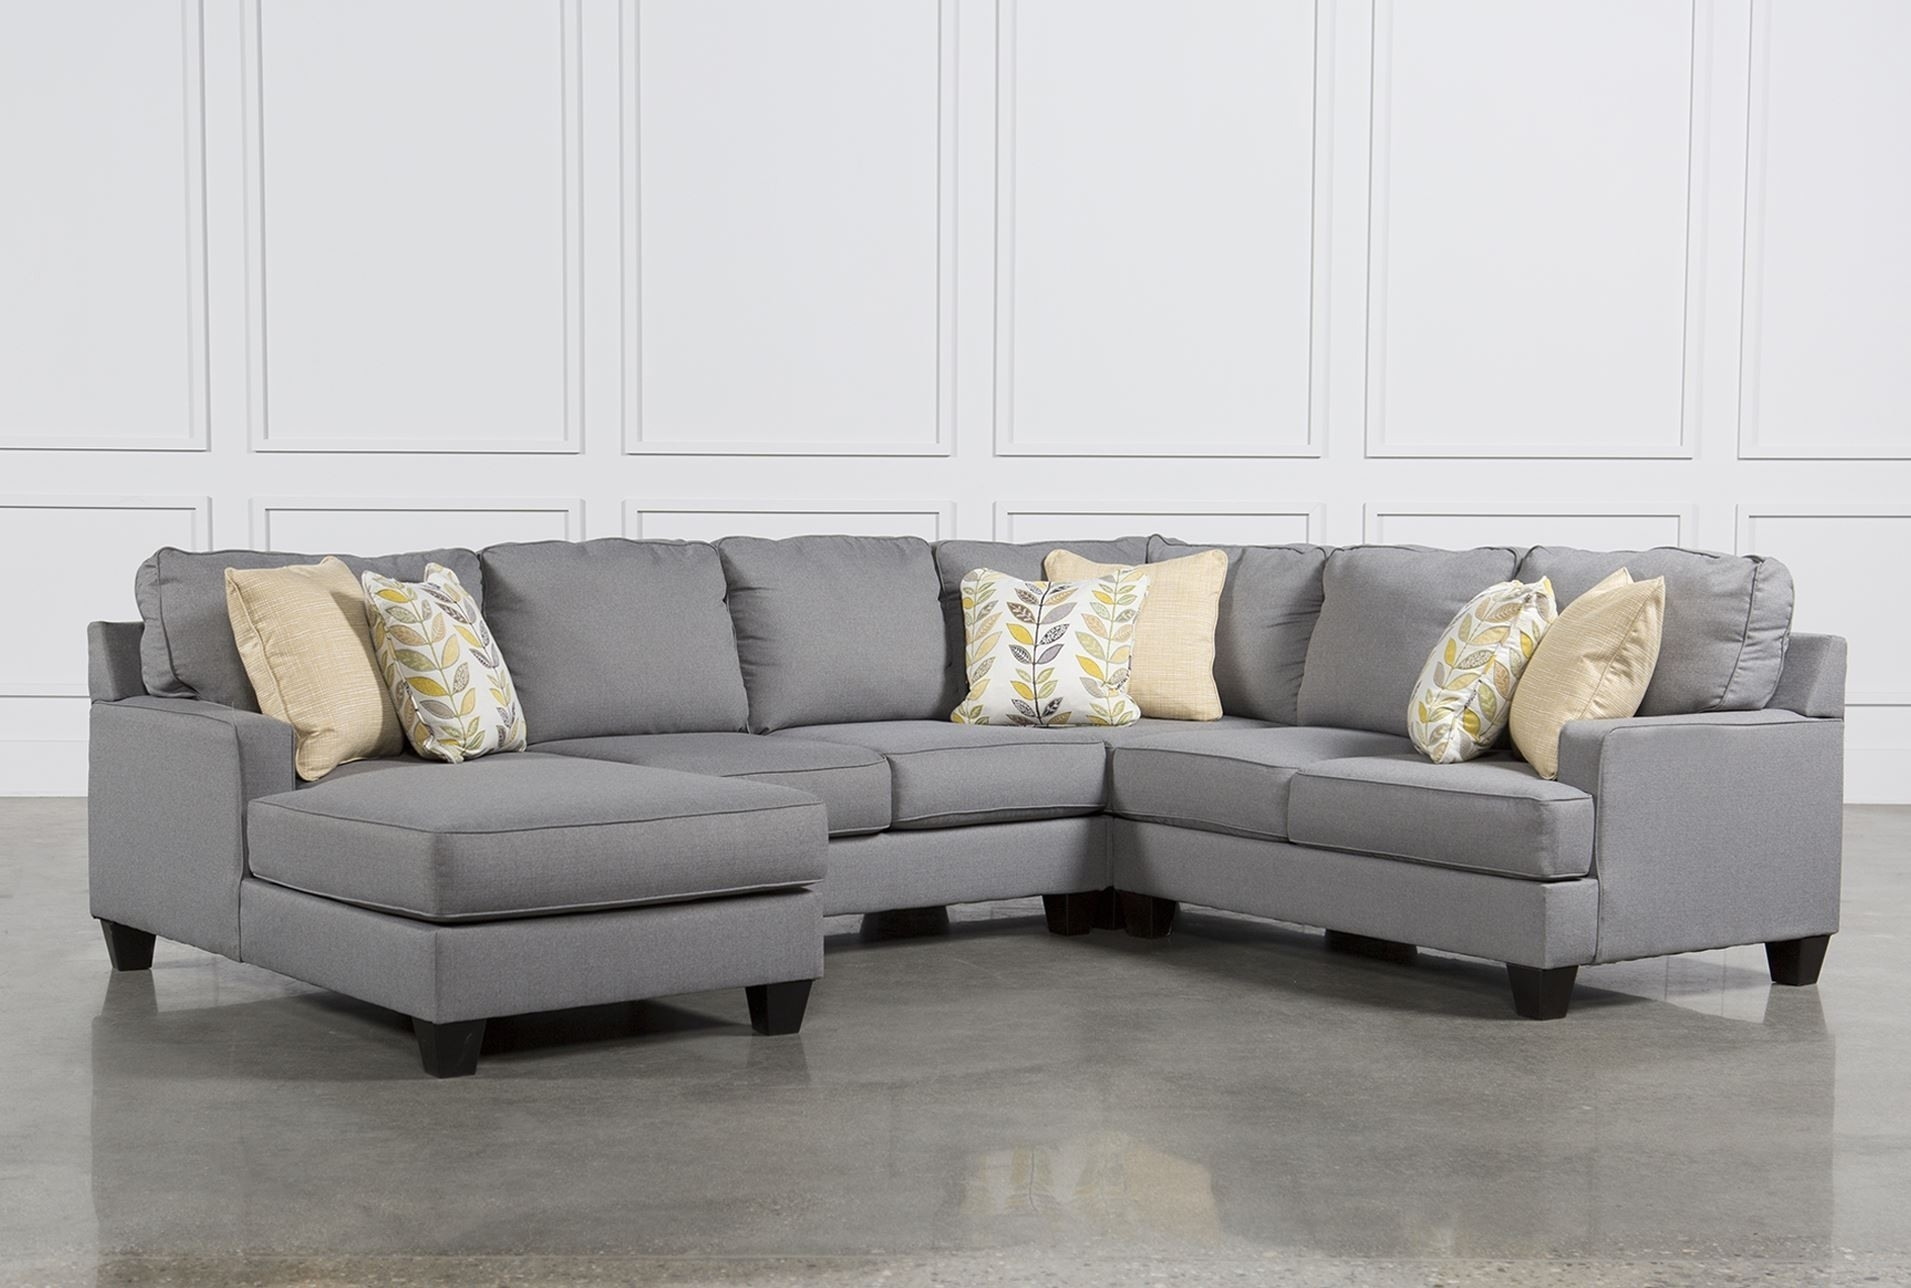 Living Spaces Sectional Couches – Implantologiabogota (View 3 of 25)